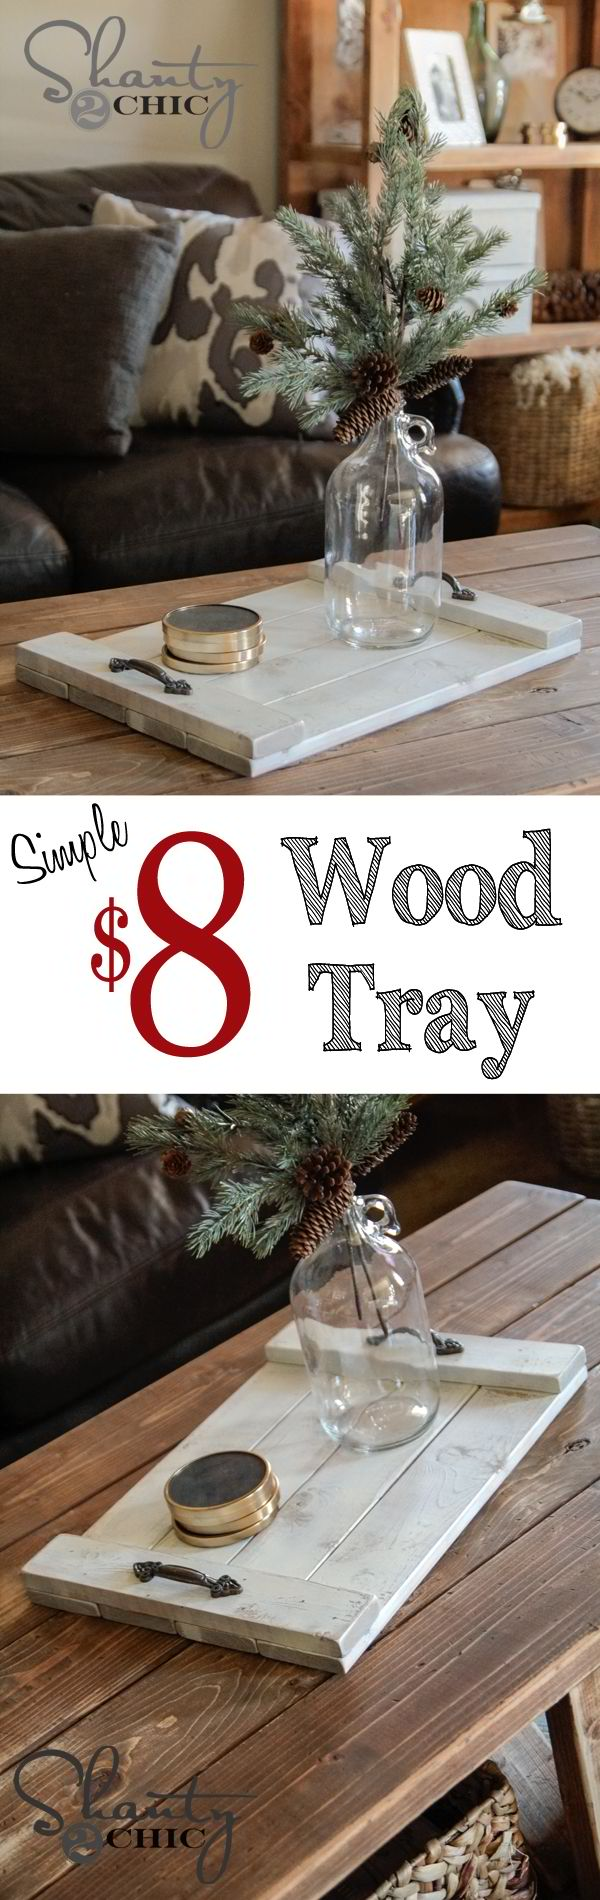 DIY $8 Wood Tray